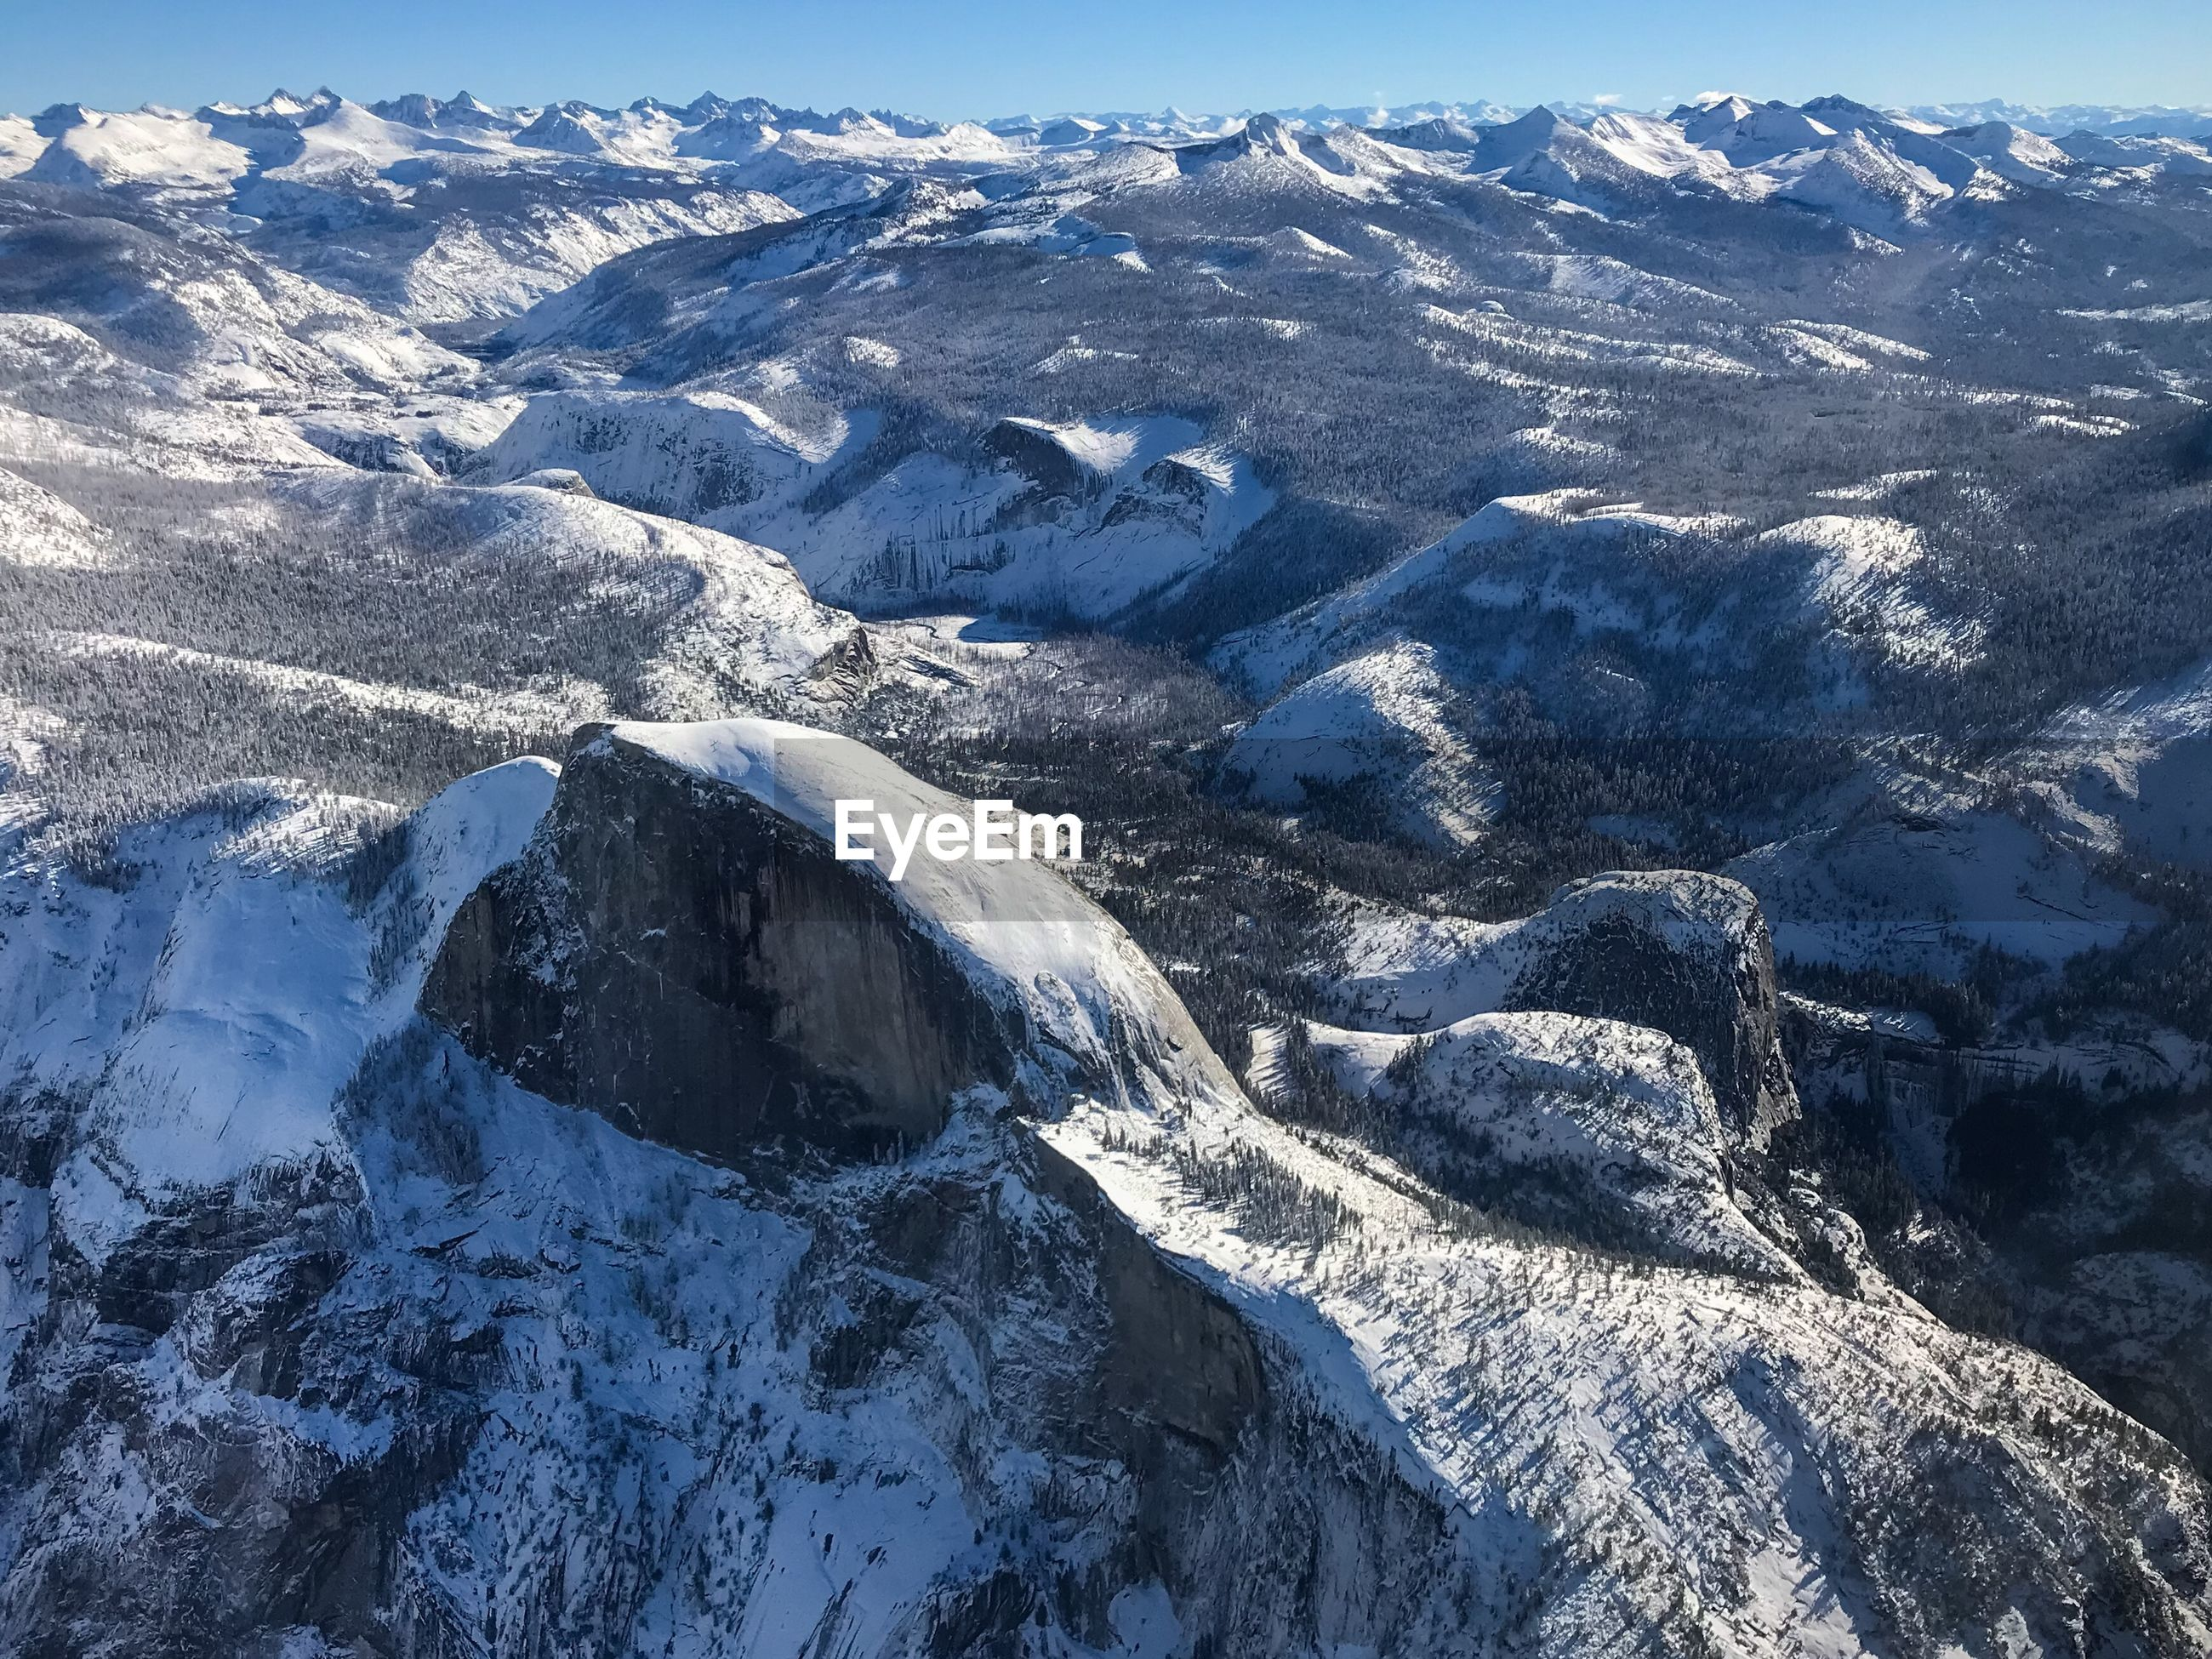 HIGH ANGLE VIEW OF SNOWCAPPED MOUNTAIN RANGE